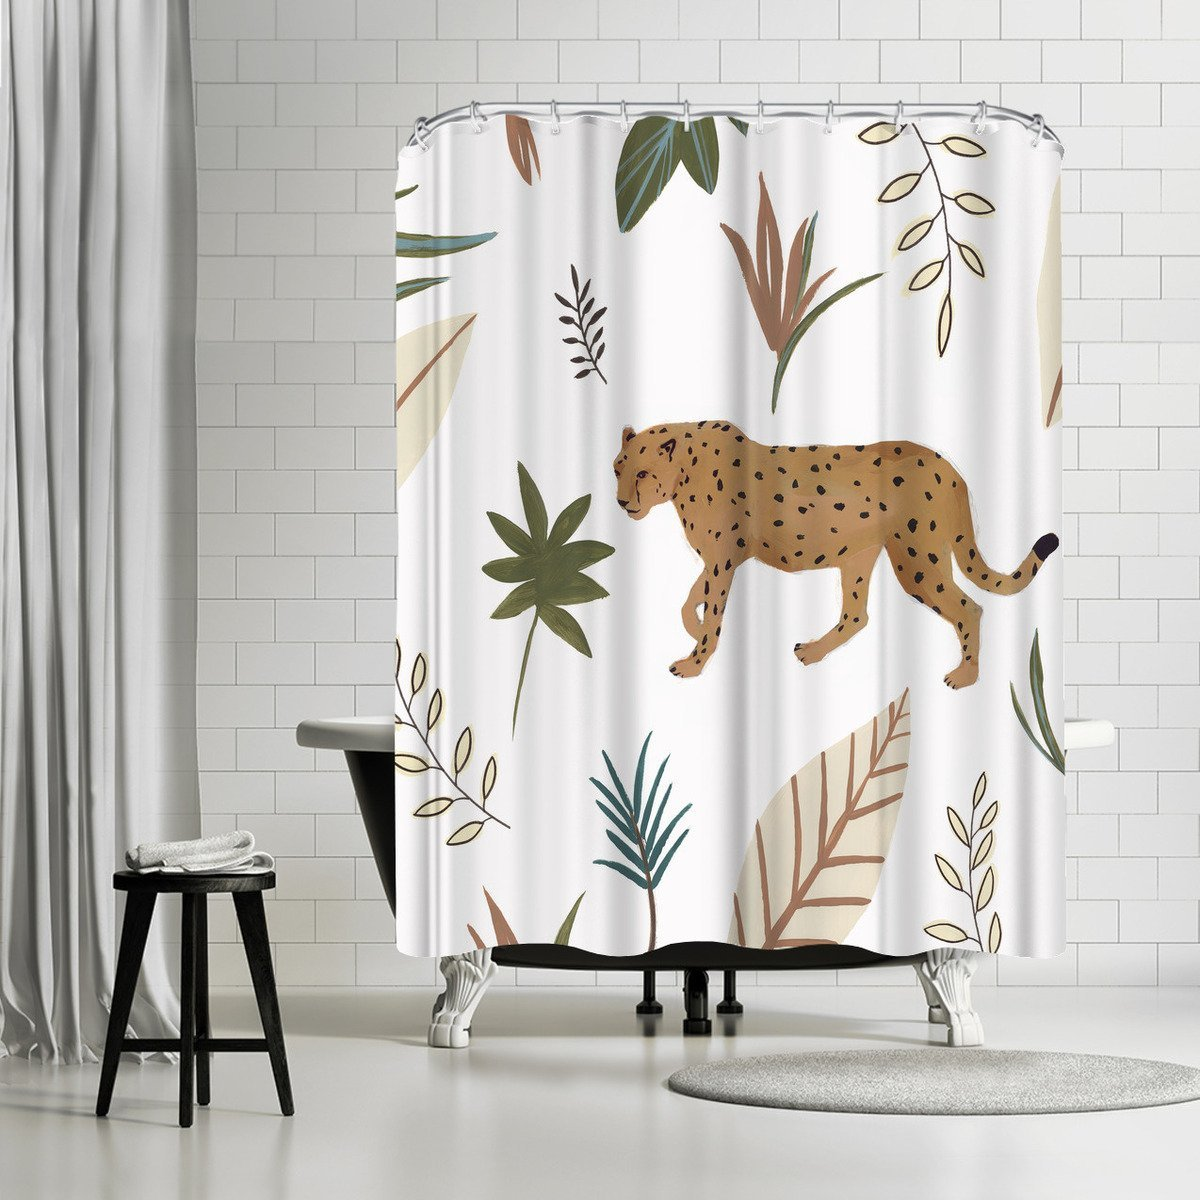 African Cheetah Ii by PI Creative Art Shower Curtain - Shower Curtain - Americanflat